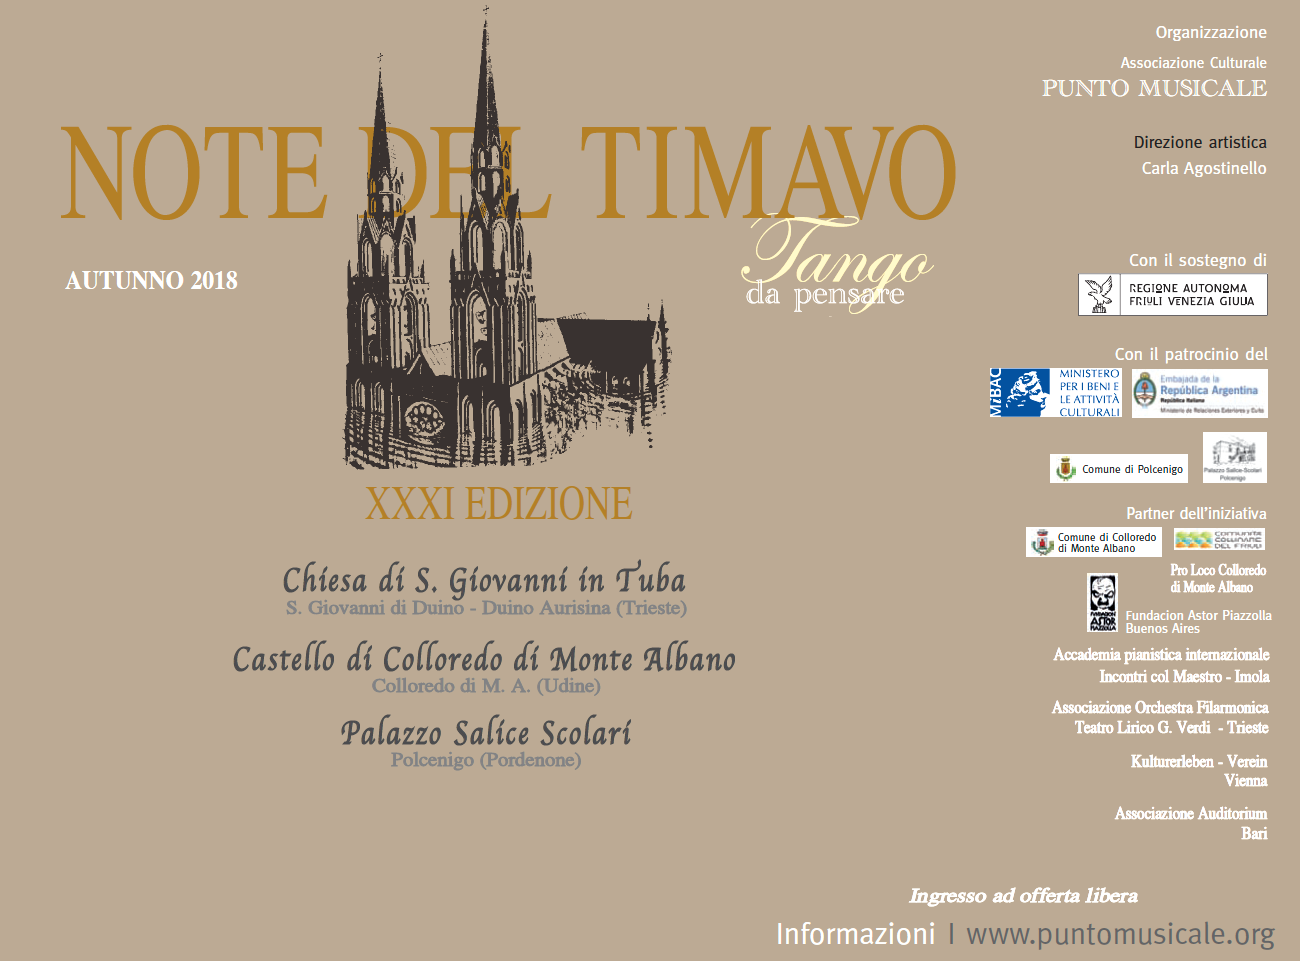 "Note del Timavo 2018: Jazz & Classe"" finestra sul jazz"